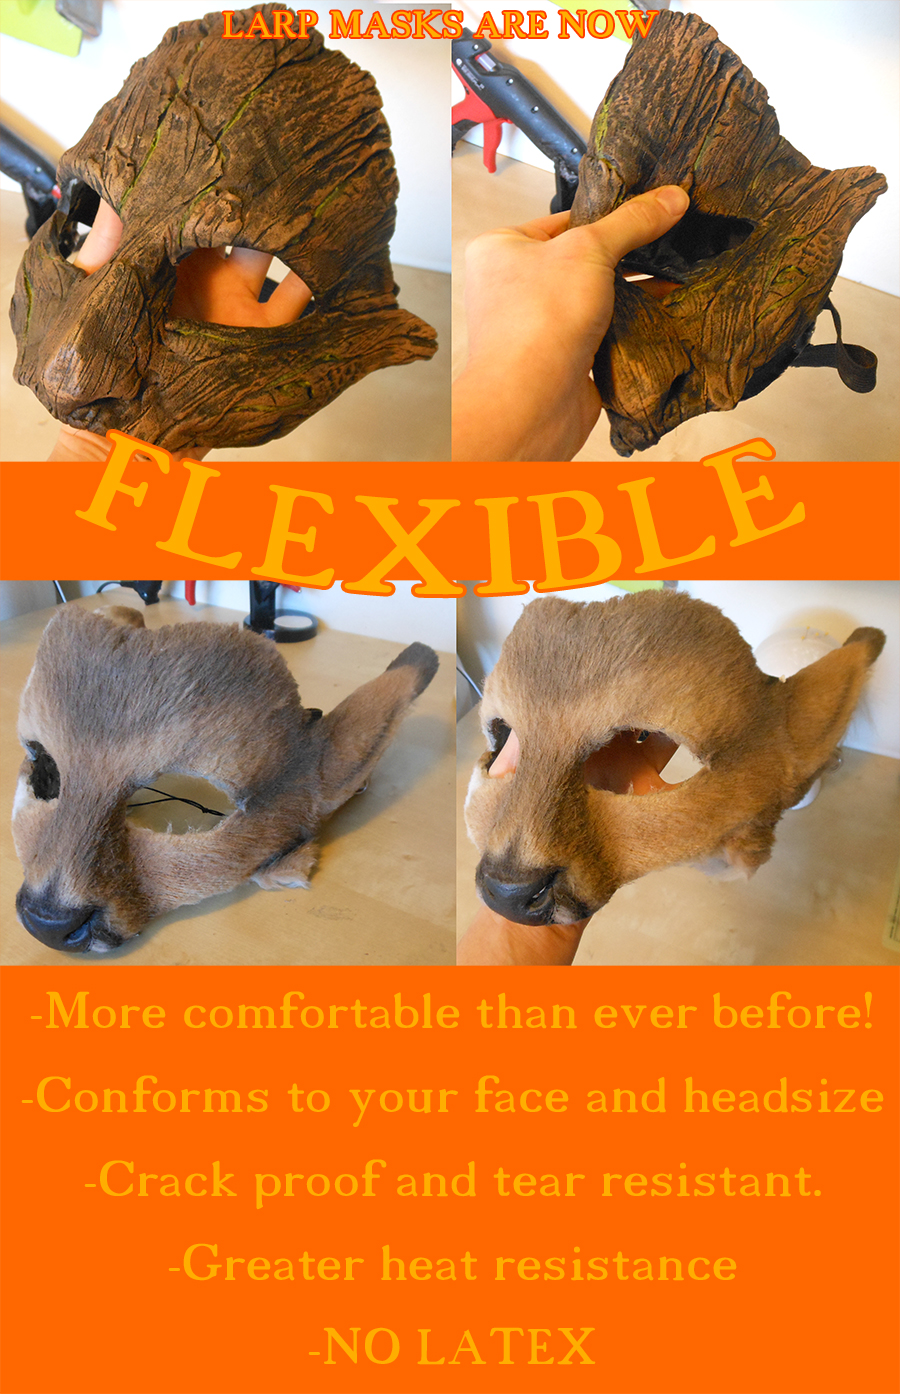 Big news for 2016! FLEXIBLE LARP MASKS